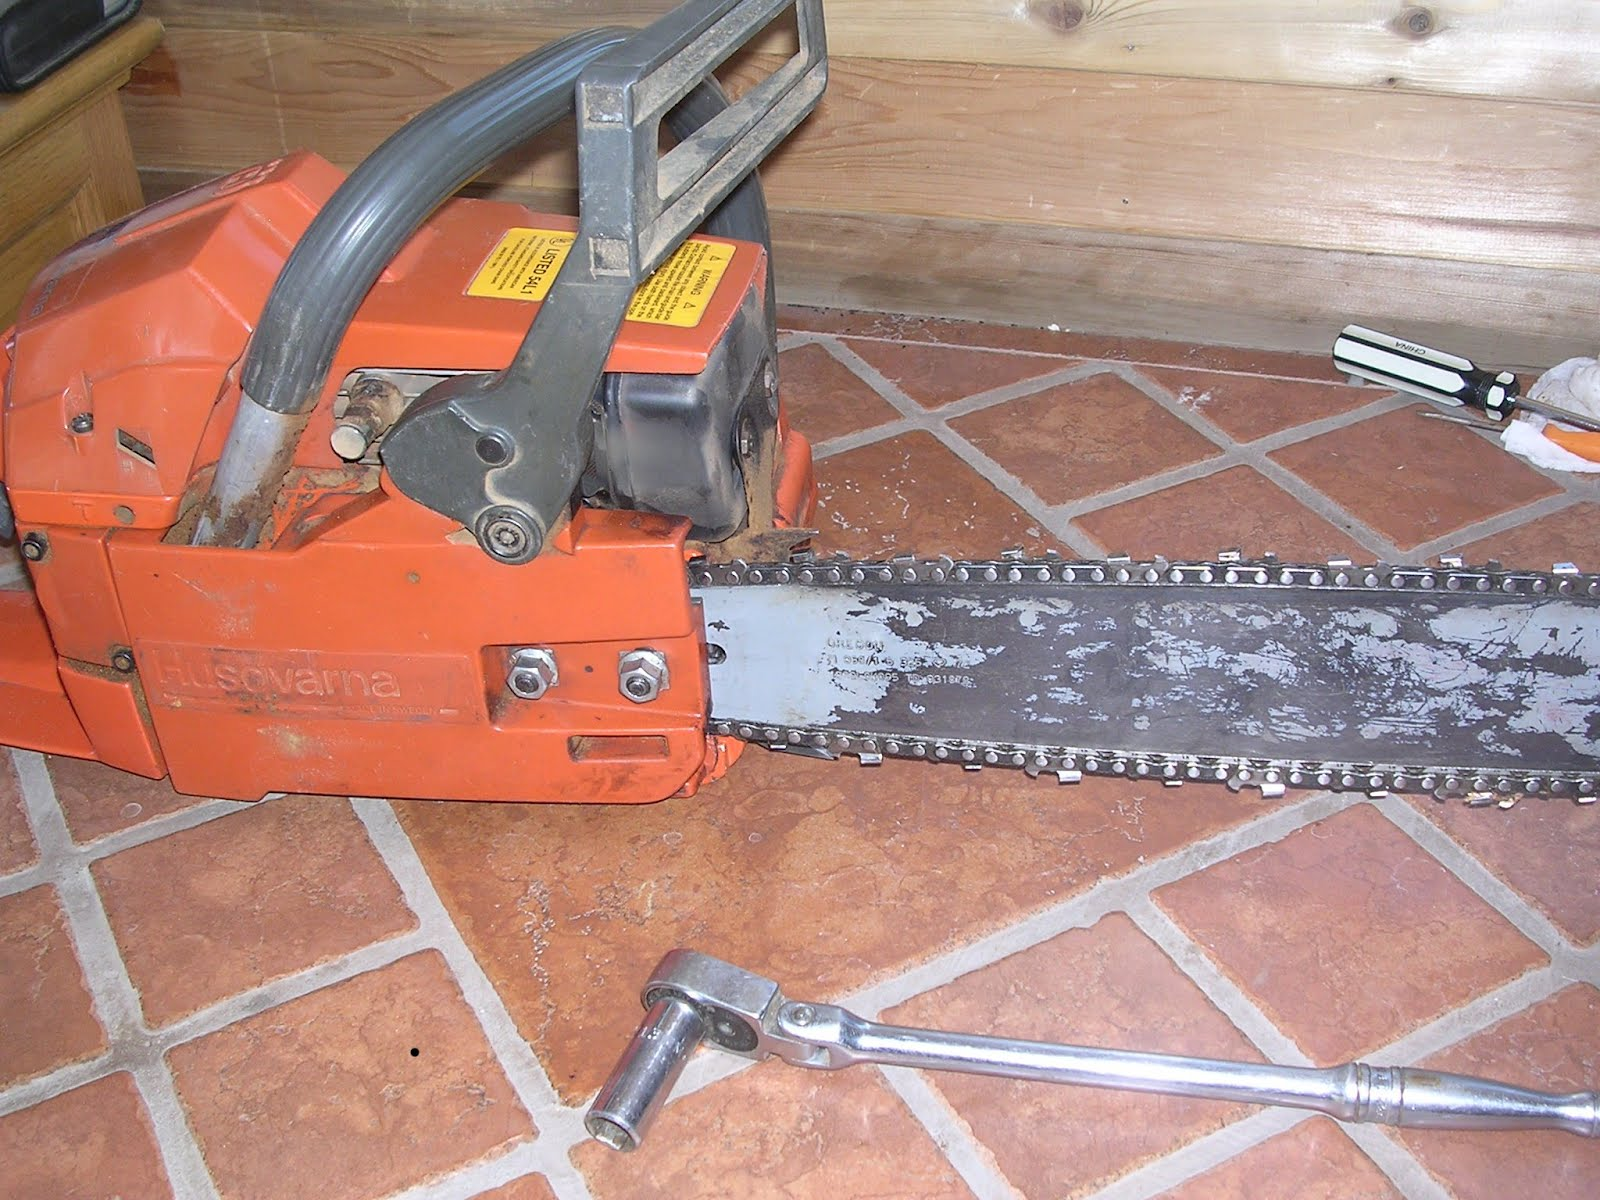 Chainsaw Maintenance and Use for Beginners